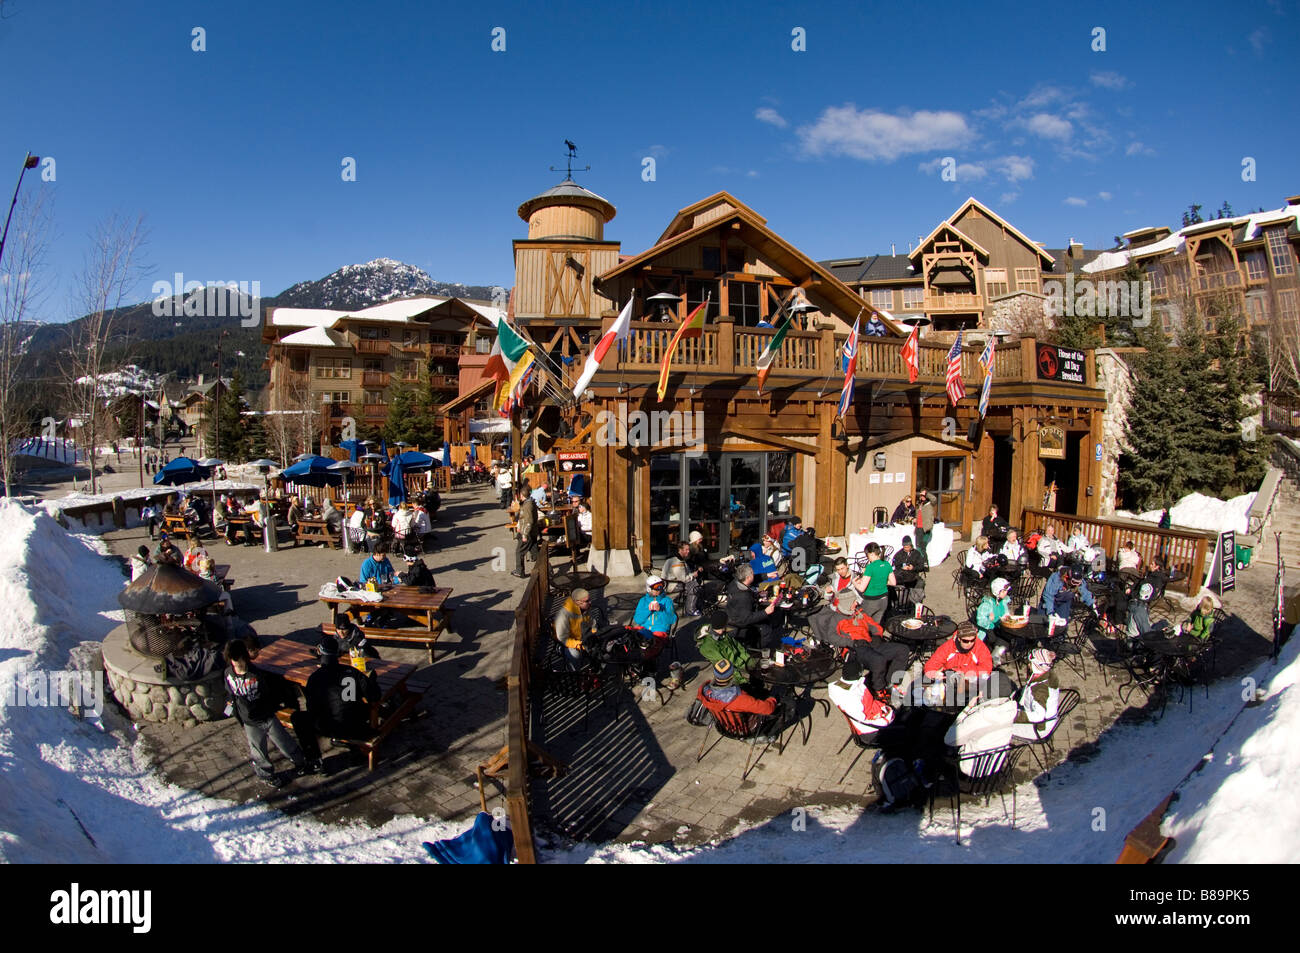 Dusty s at Creekside Whistler British Columbia Canada - Stock Image